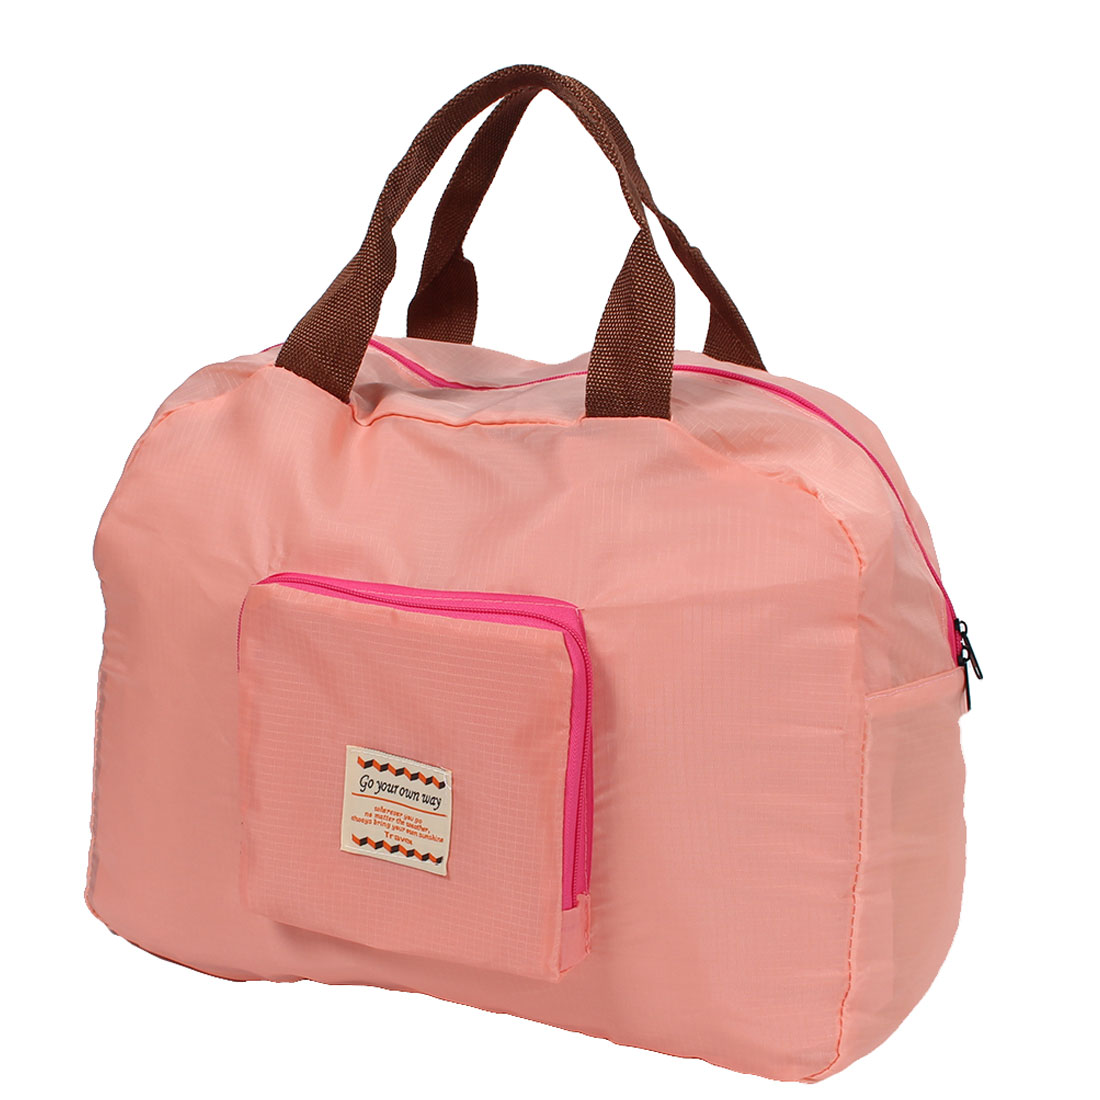 Ourdoor Travel Shopping Foldable Luggage Clothes Storage Bag Organizer Coral Pink